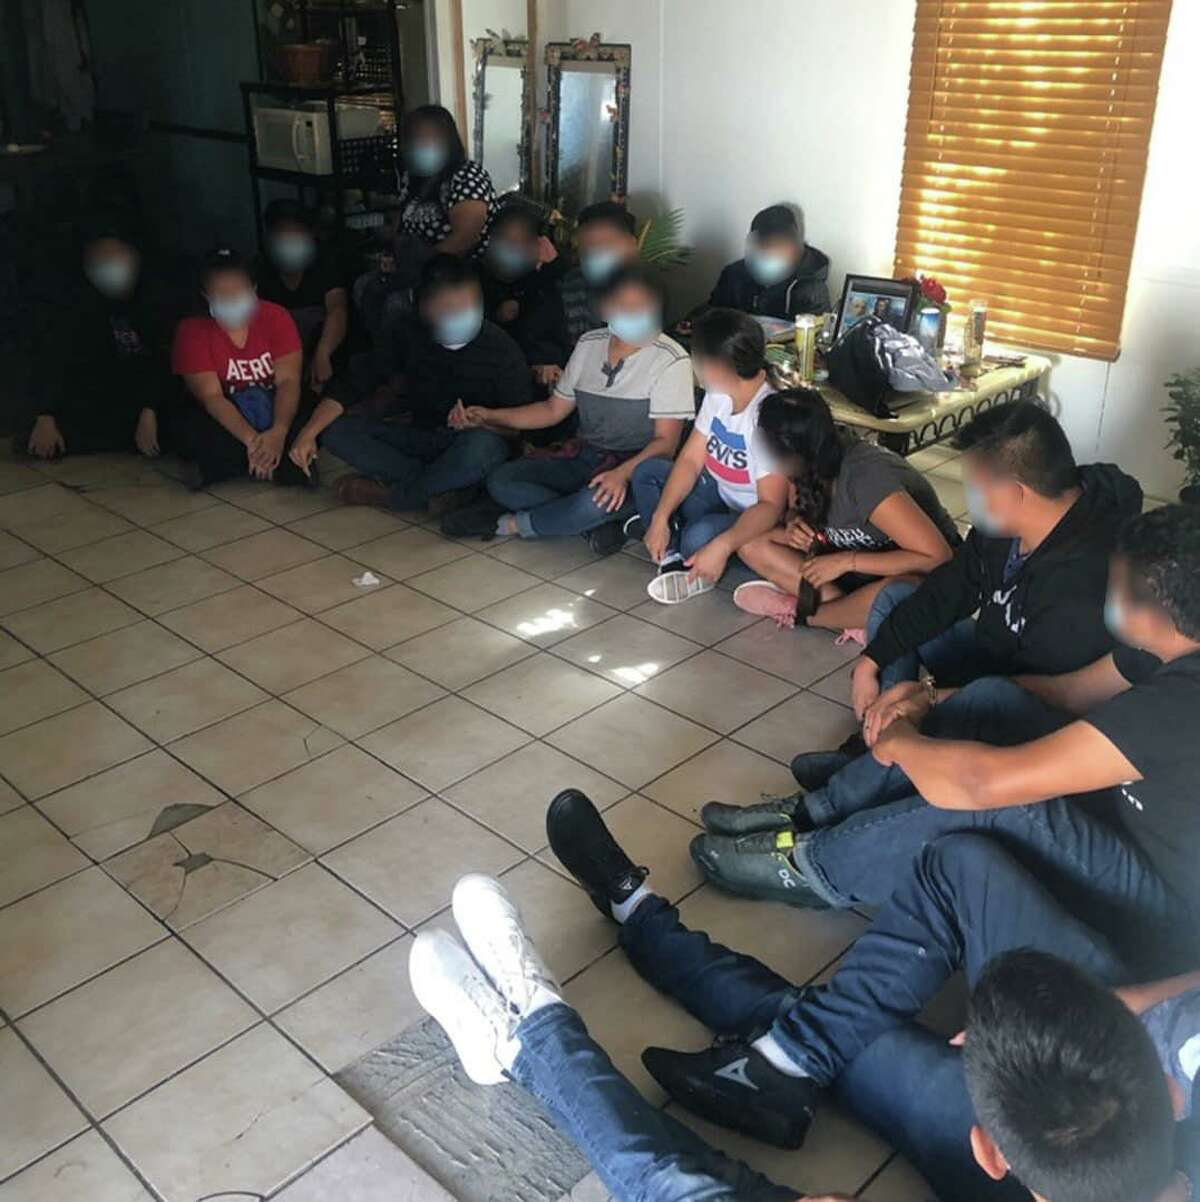 U.S. Border Patrol agents along with Laredo police officers discovered this stash house that was loaded with 15 immigrants who had crossed the border illegally.